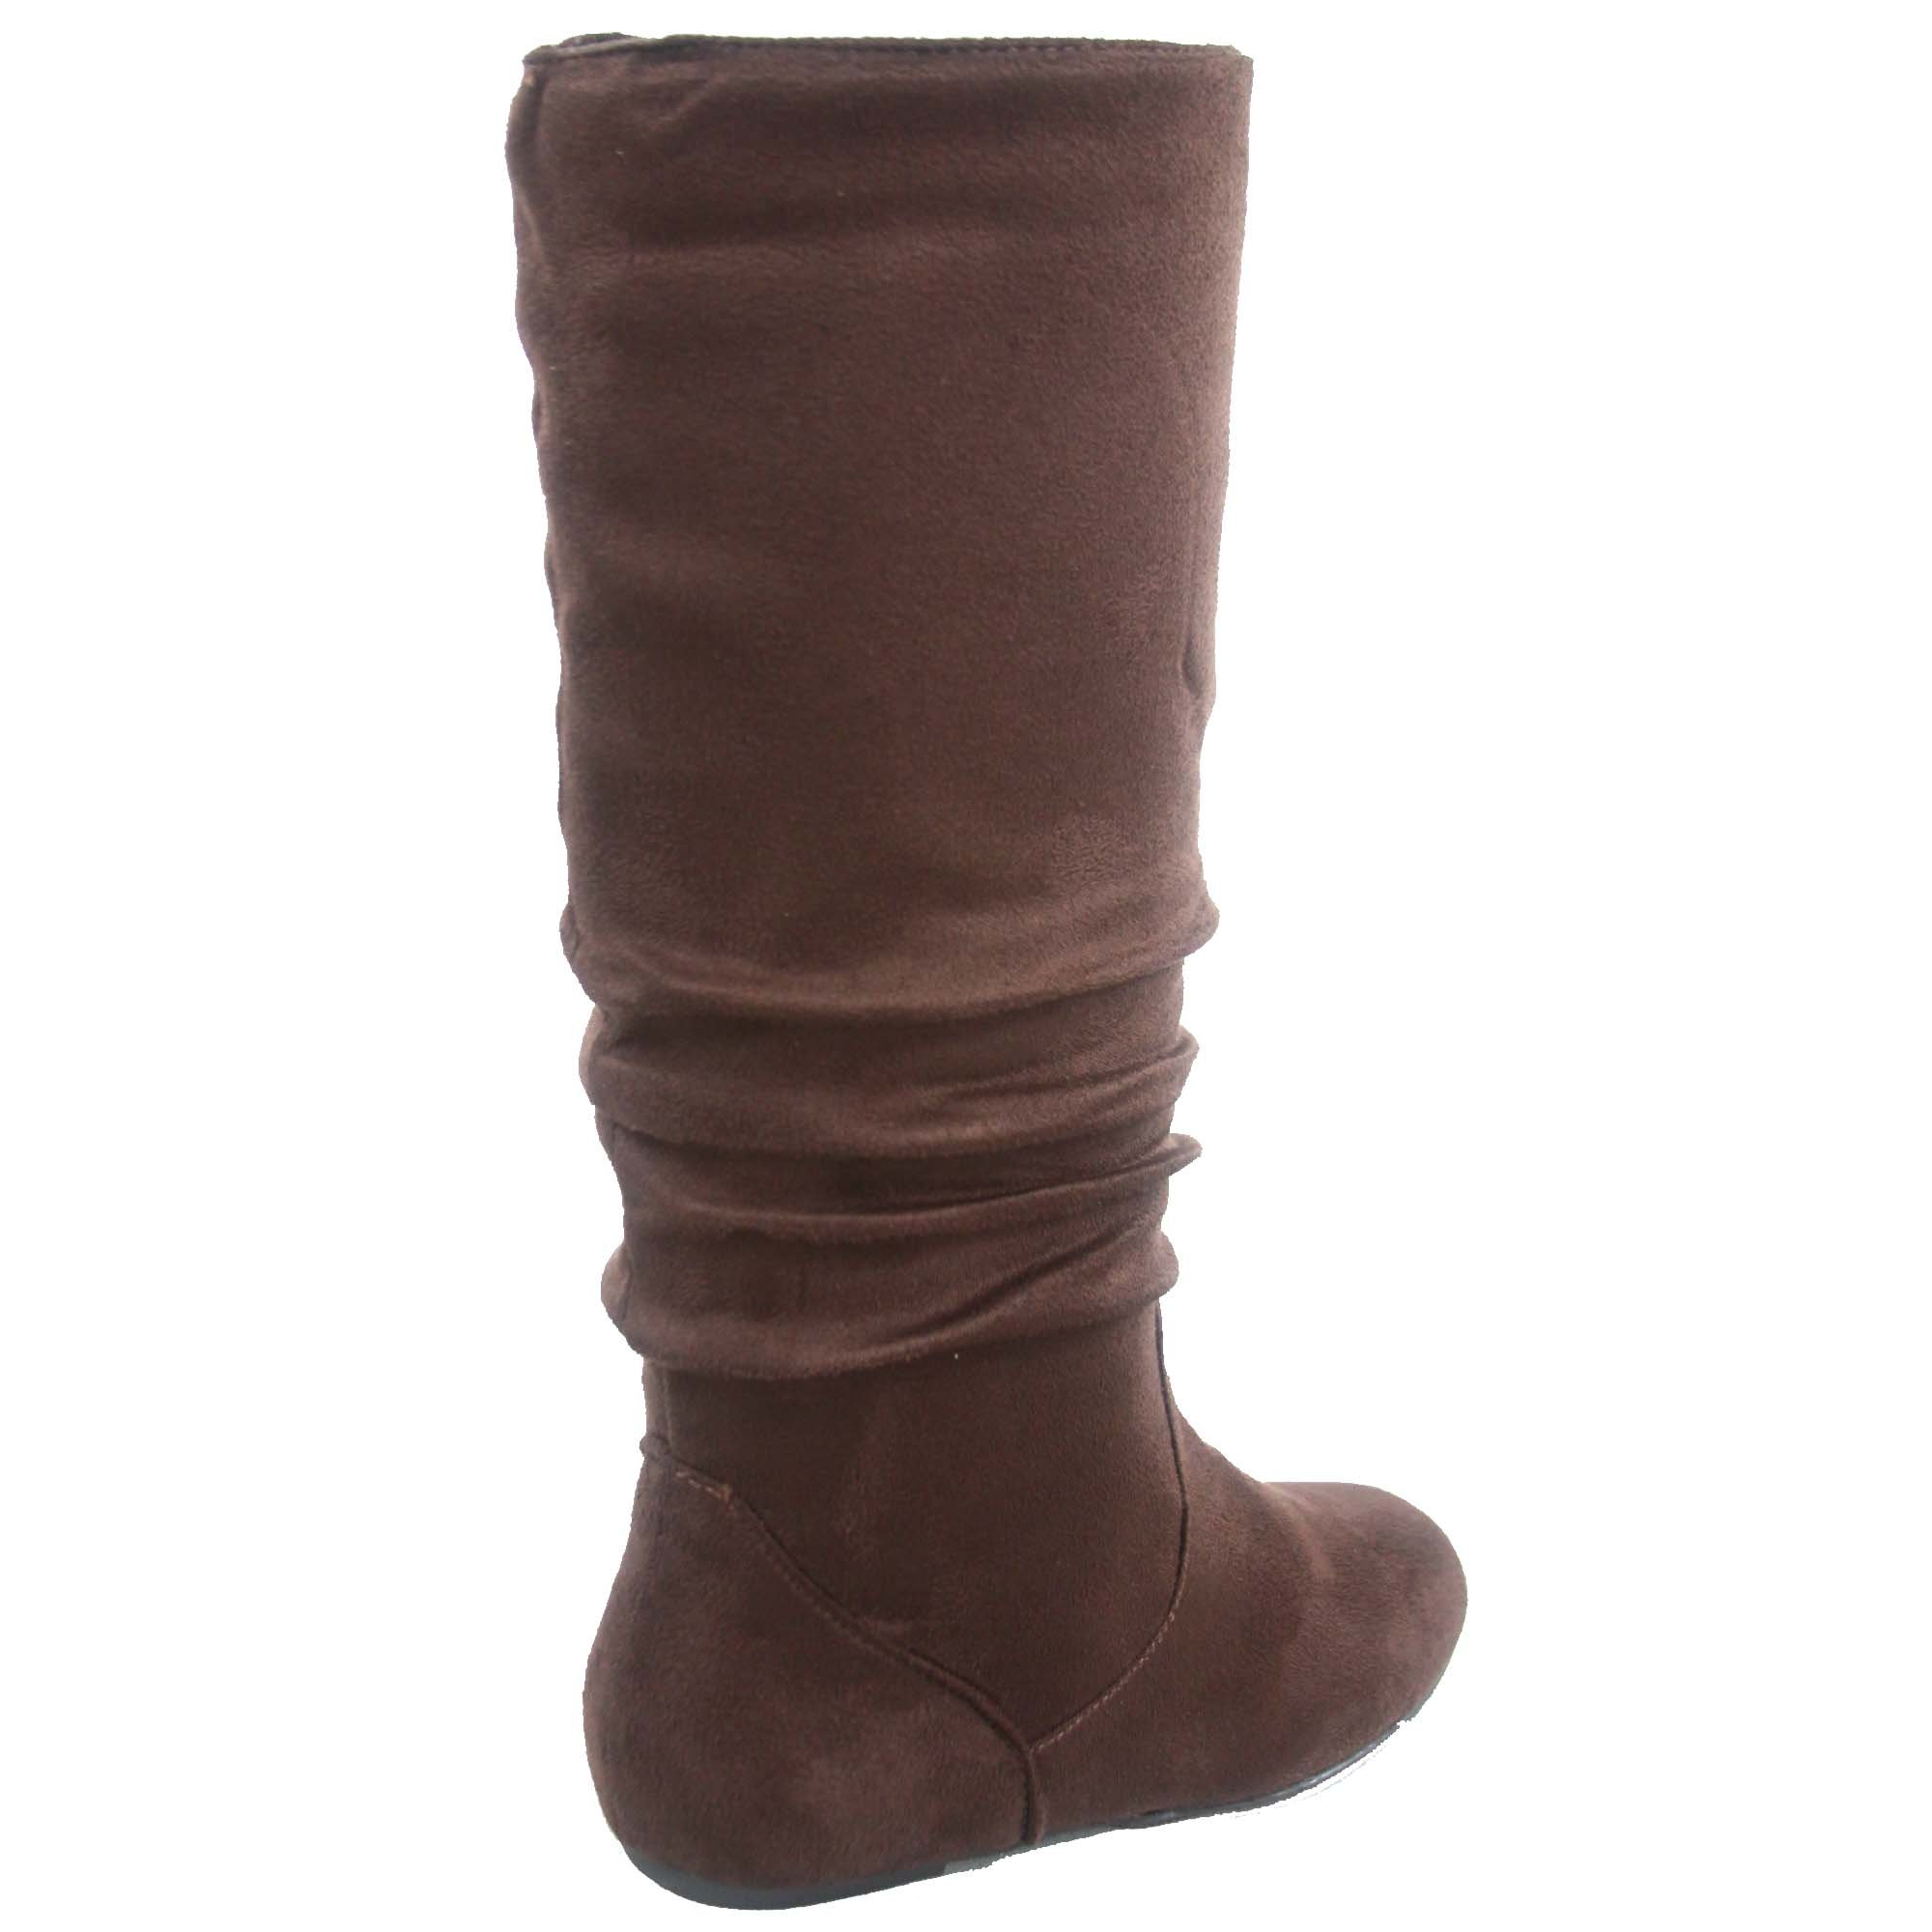 Top Moda Data-1 Women's Shoes Cute & Comfort Round Toe Flat Heel Slouchy Mid Calf Boot (8.5, Brown) by Top Moda (Image #2)